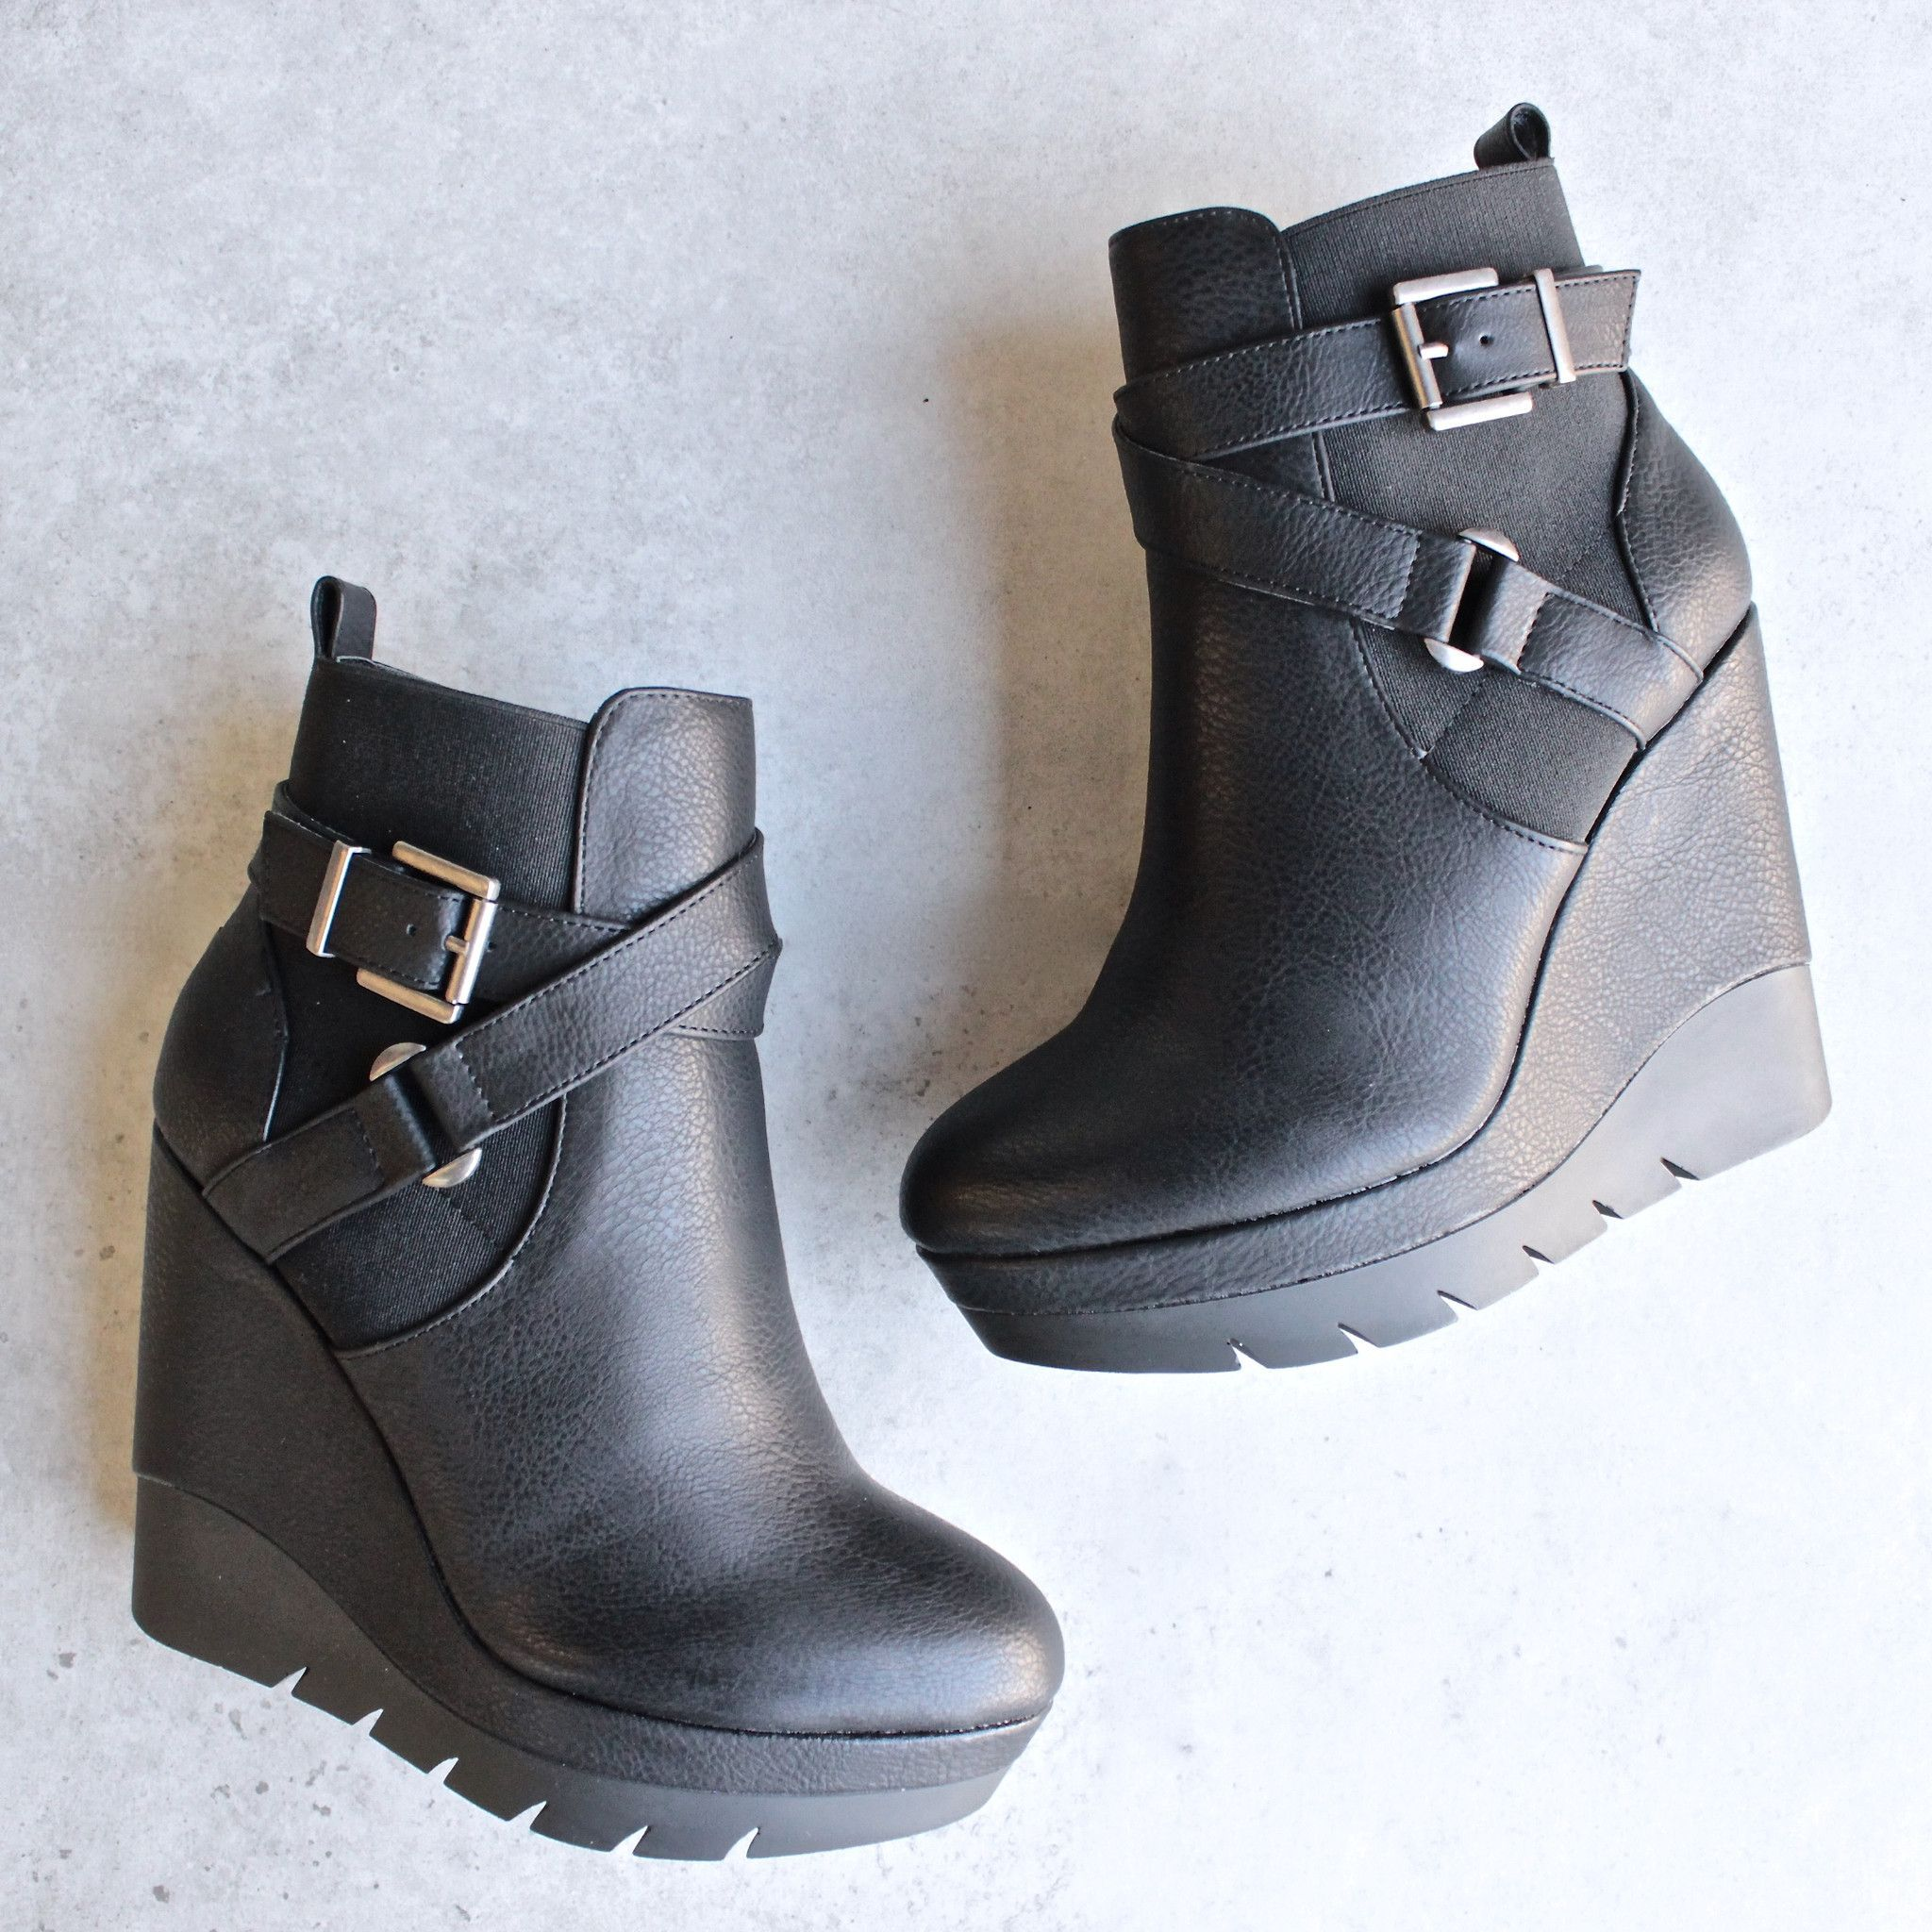 sbicca womens free spirit boots - black ALL WOMEN'S SHOES http://amzn.to/2kR0oA8